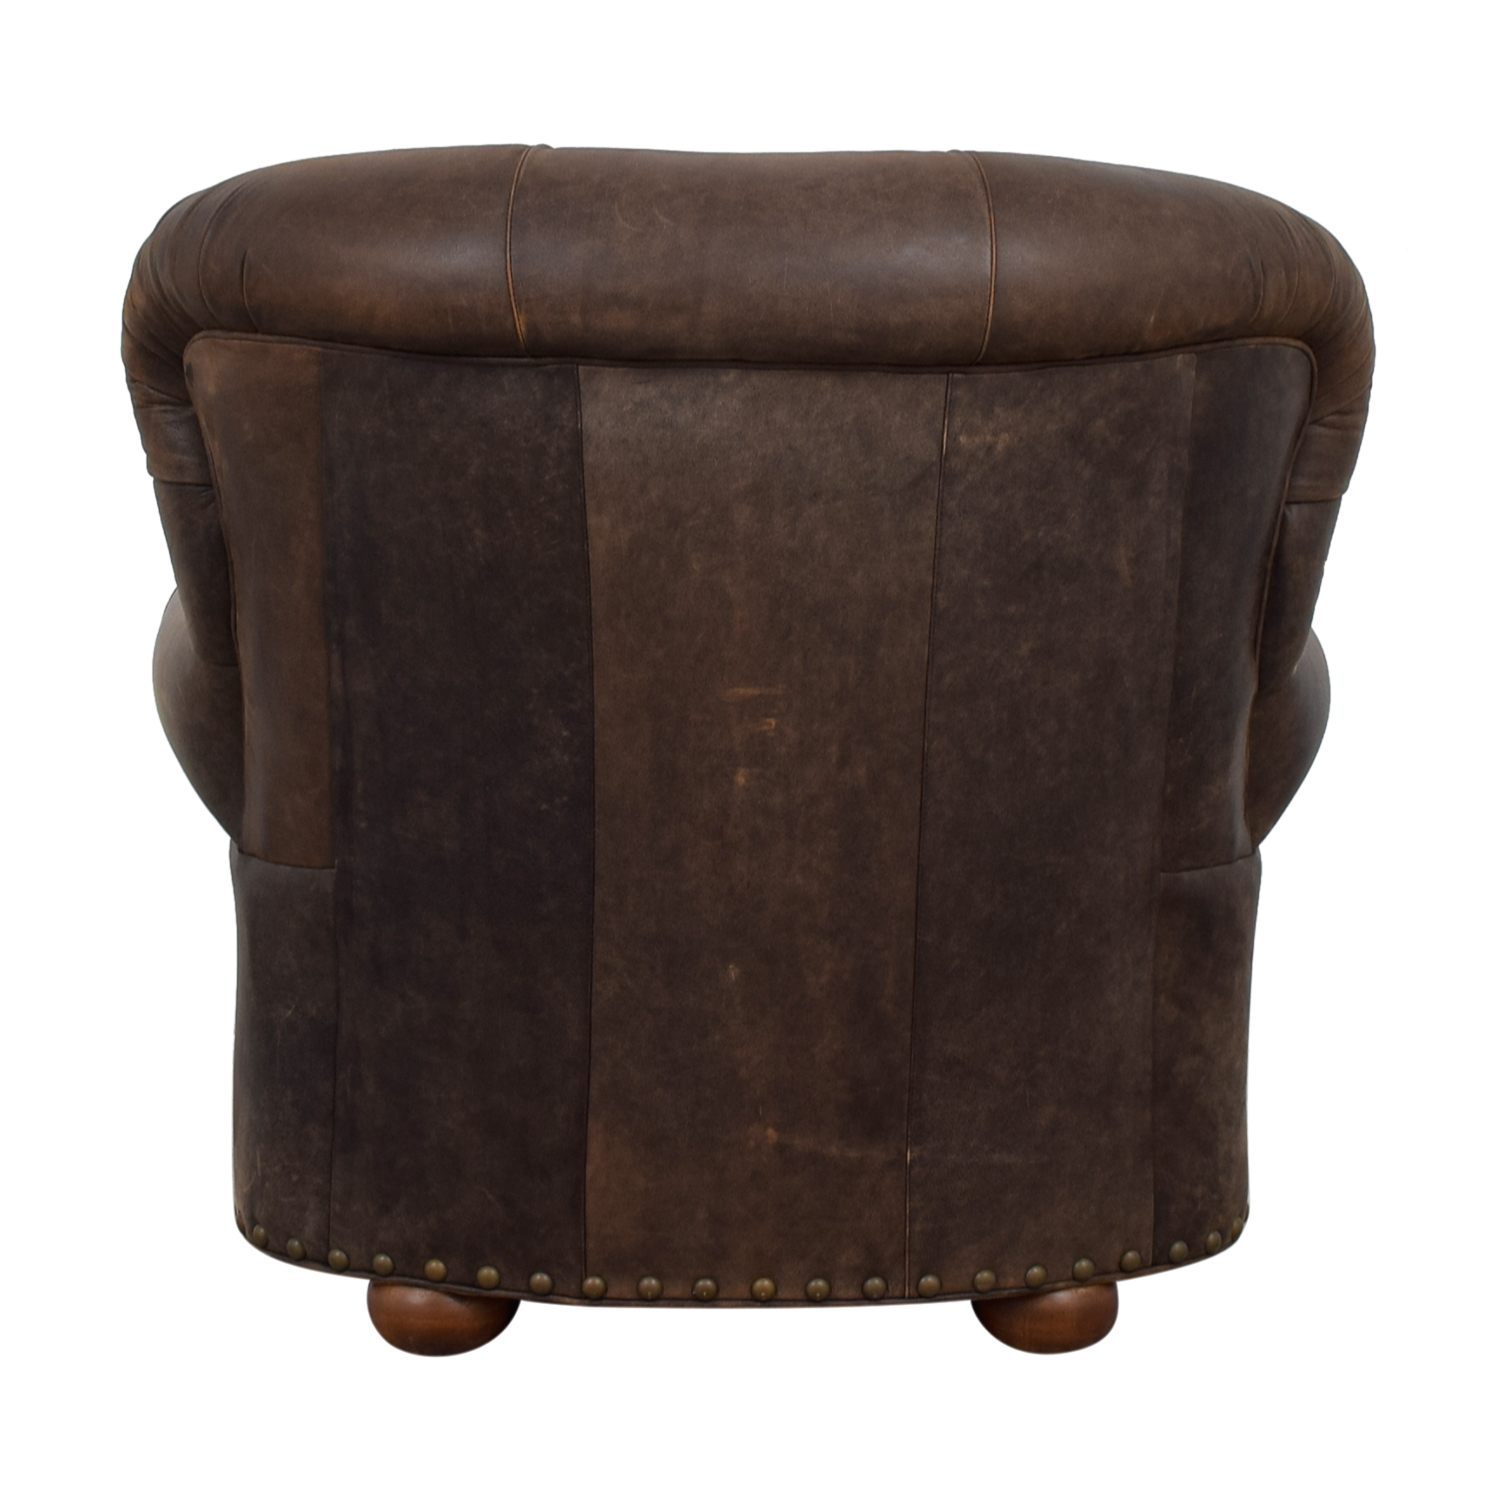 Restoration Hardware Restoration Hardware Churchill  Brown Leather Tufted Nailhead Chair price